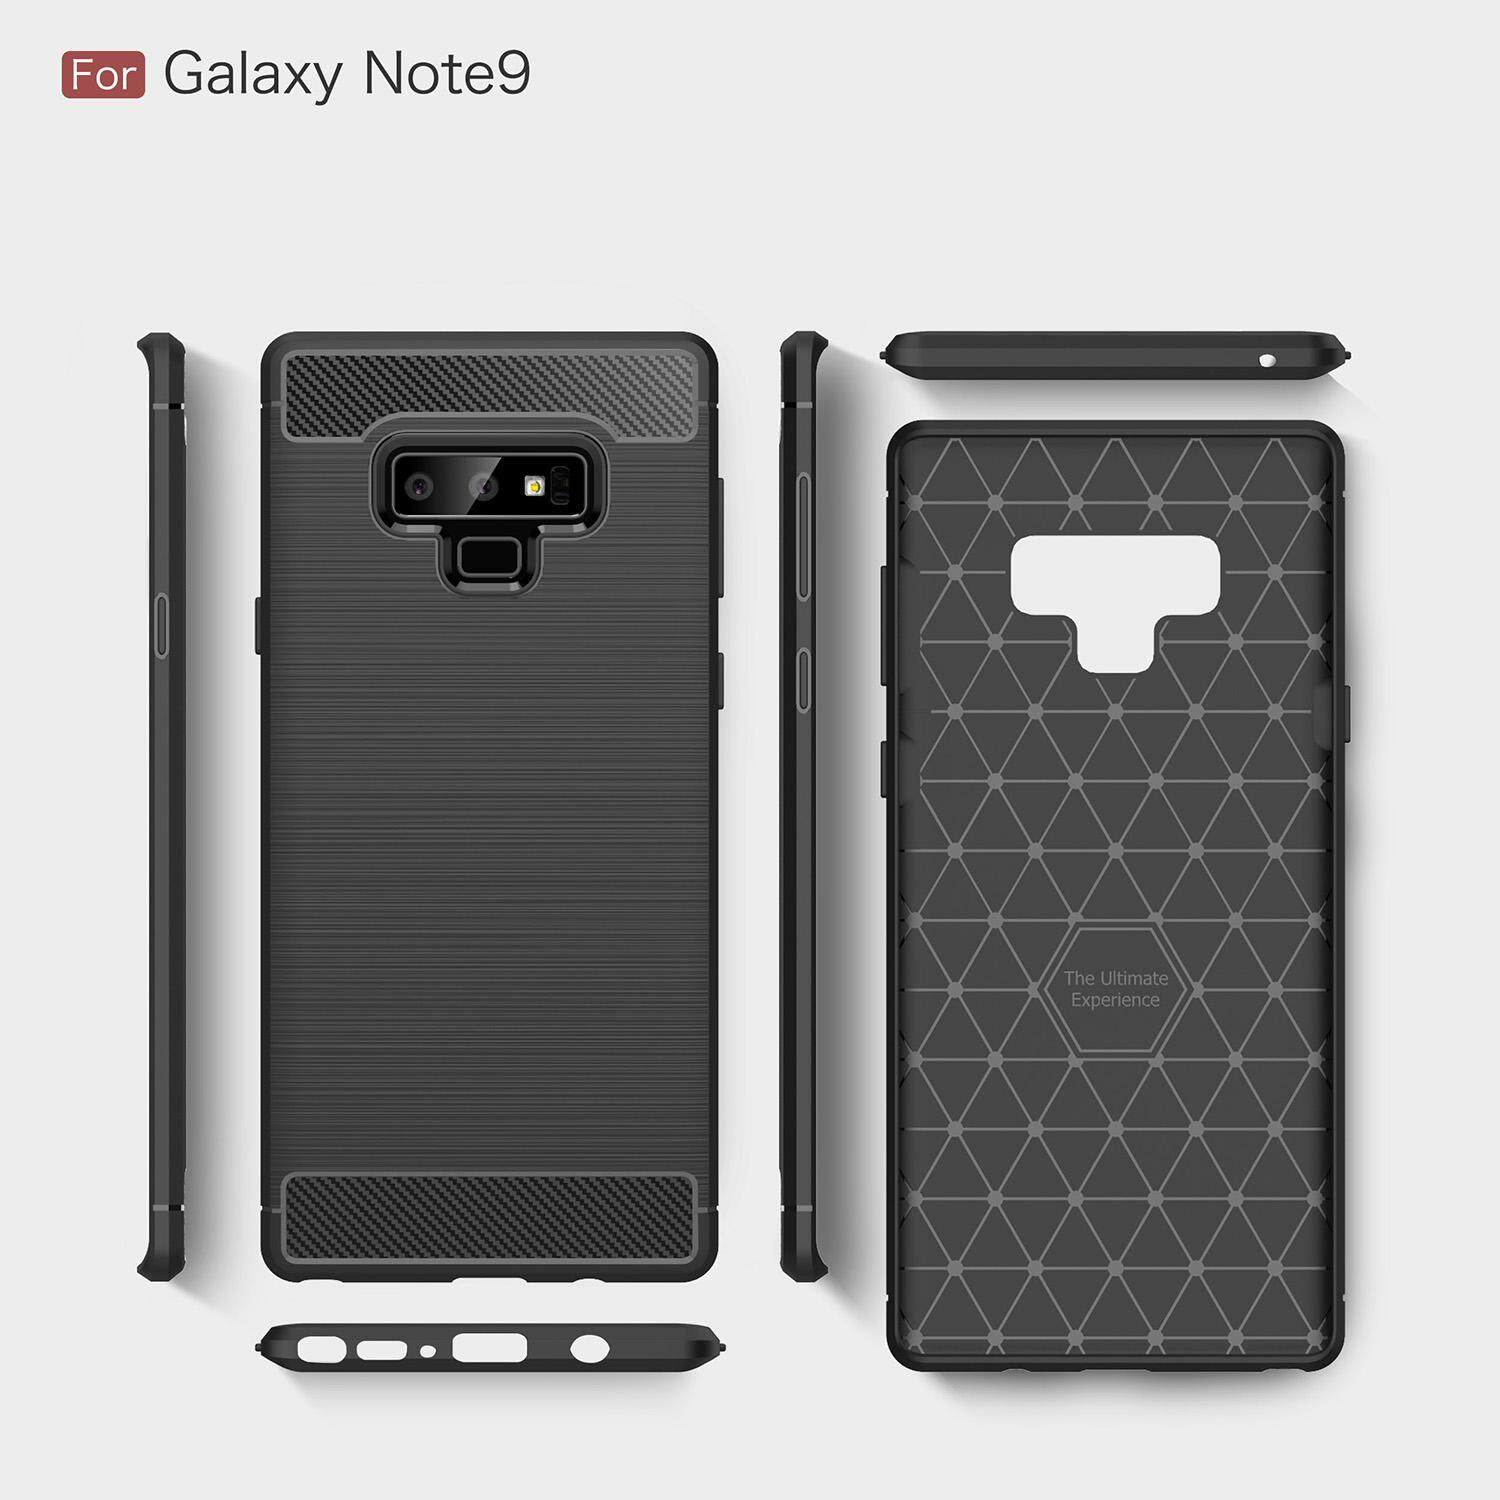 For Samsung Galaxy Note 9 Rugged Armor Shockproof Case Carbon Fiber Cover